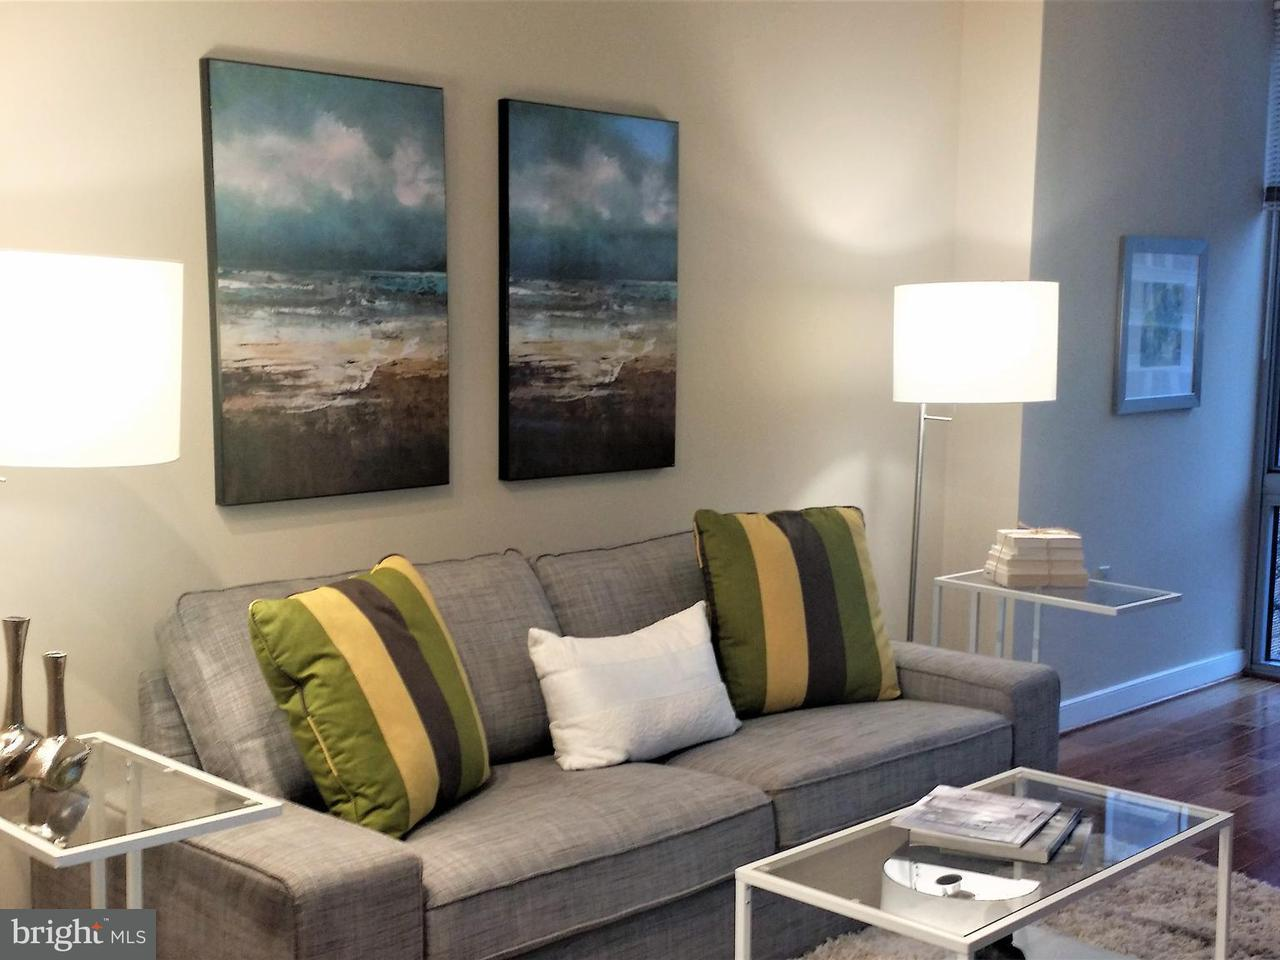 Additional photo for property listing at 555 MASSACHUSETTS AVE NW #507 555 MASSACHUSETTS AVE NW #507 Washington, District Of Columbia 20001 United States